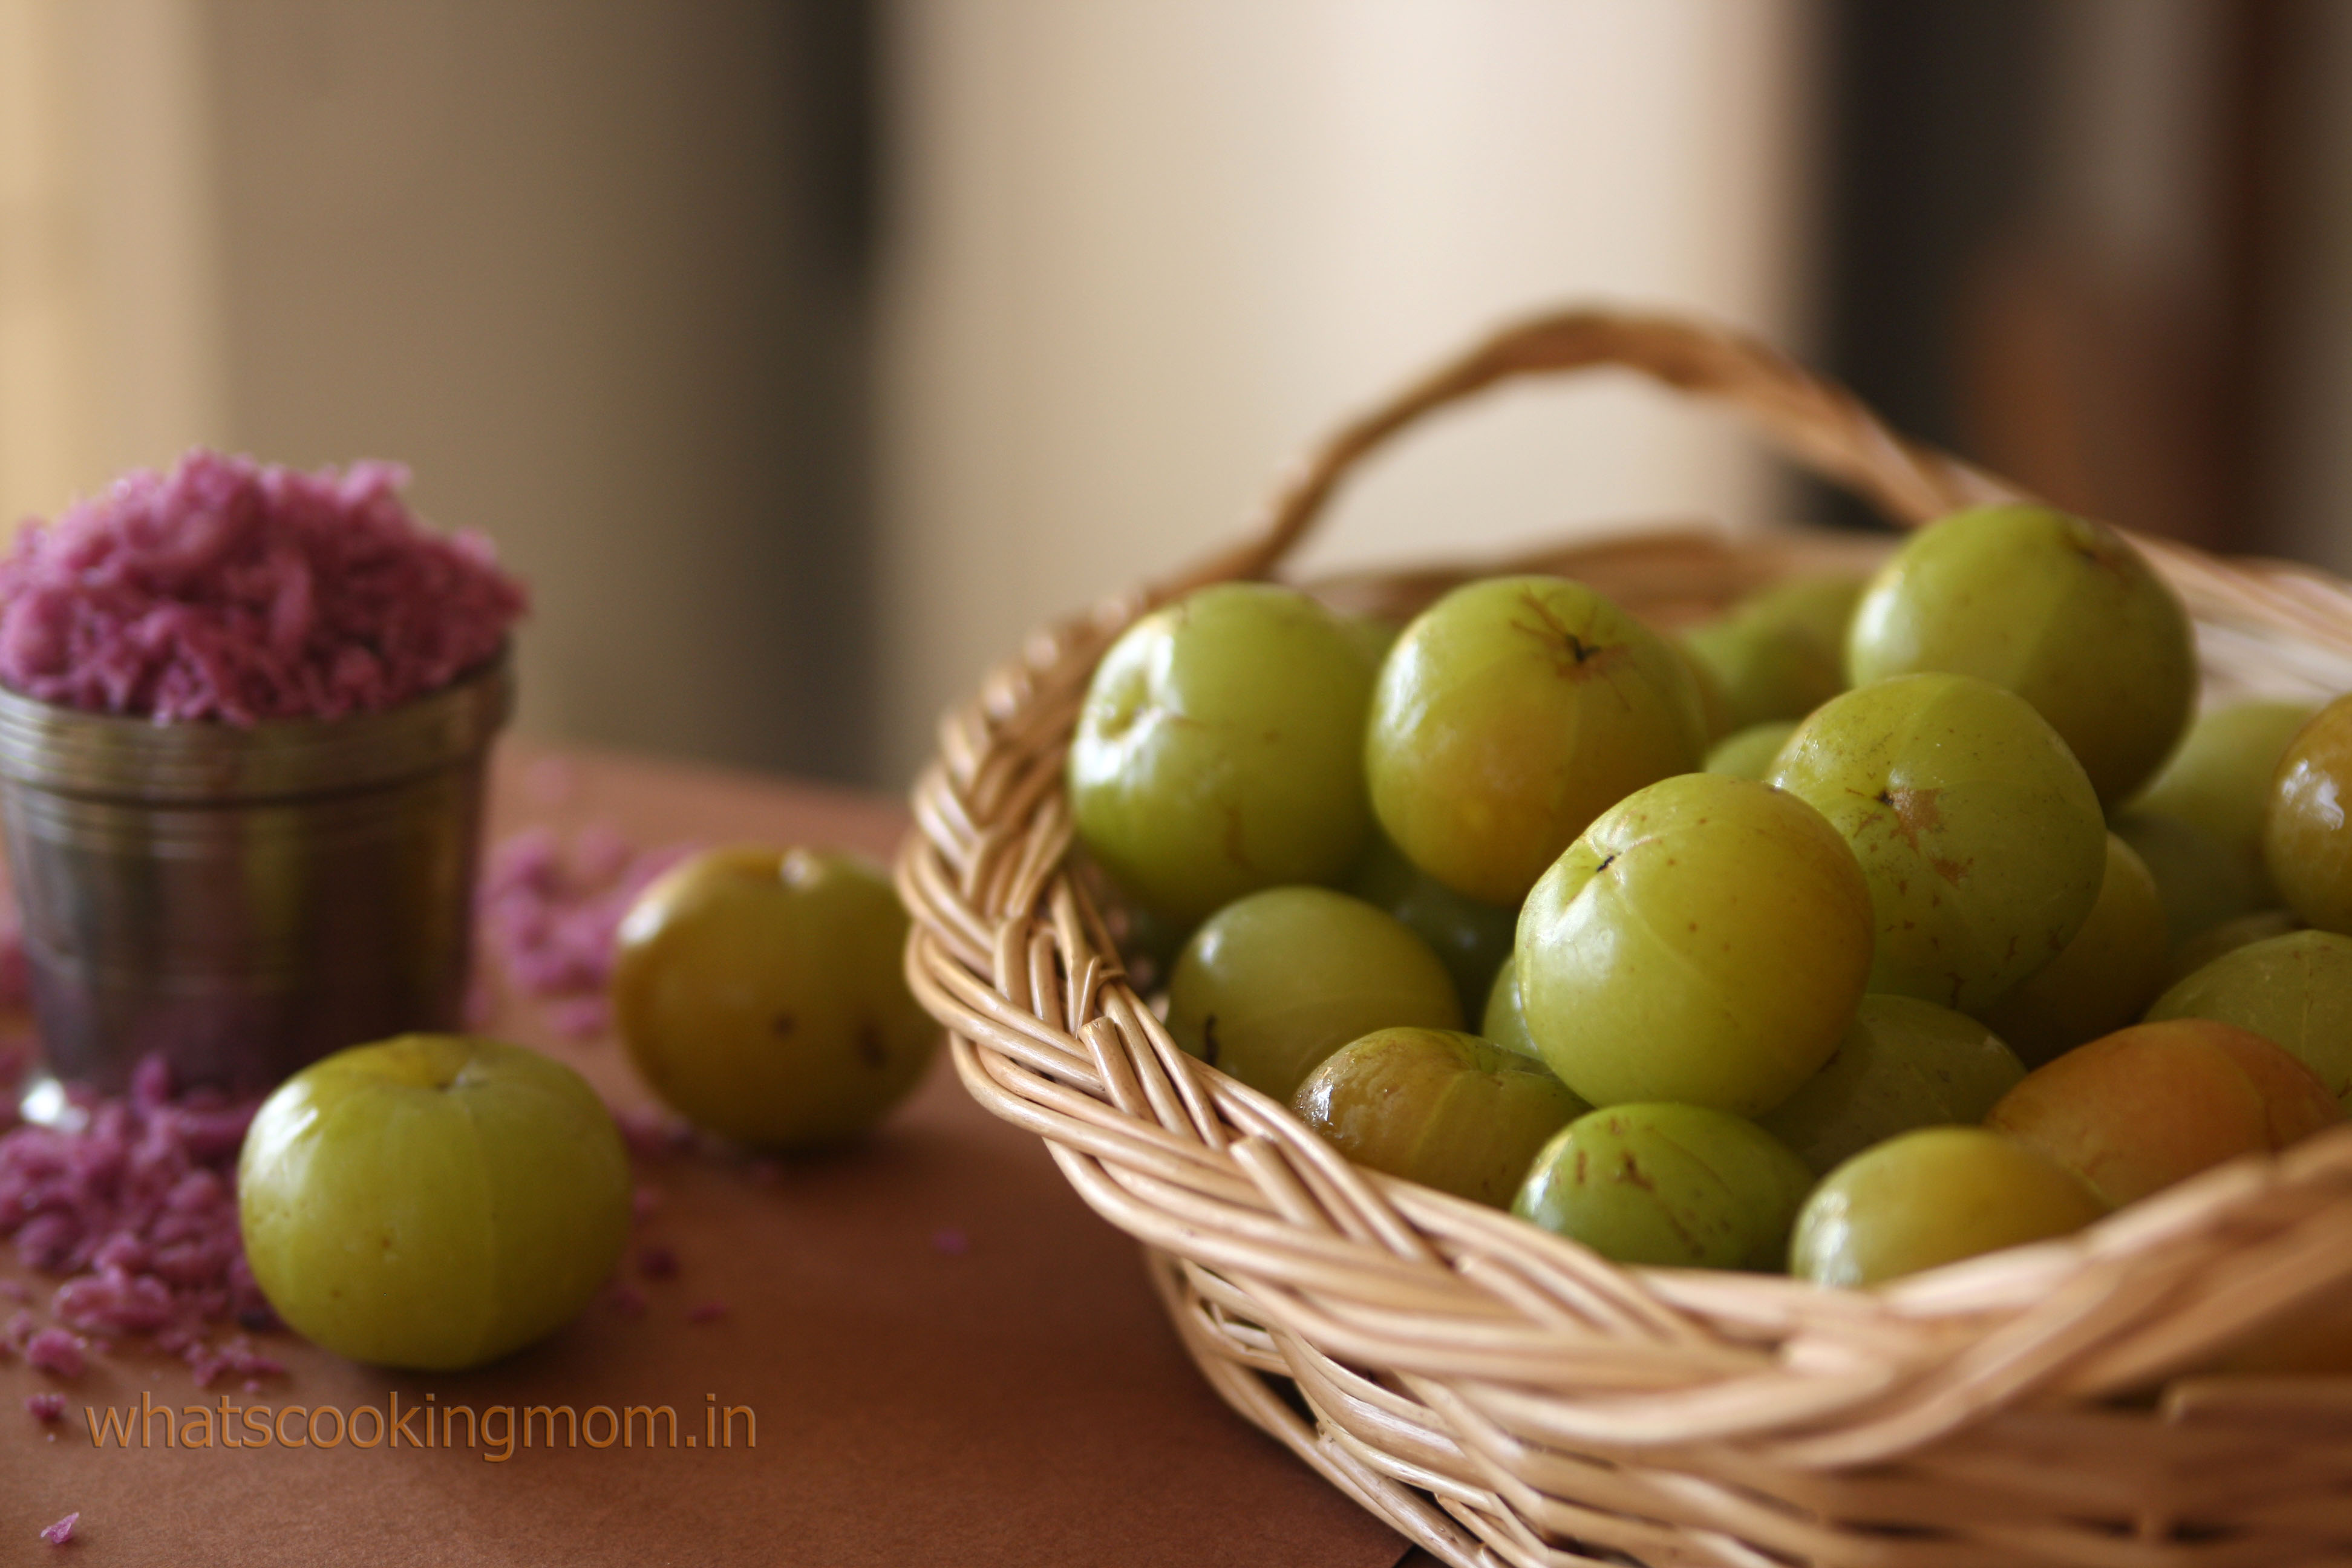 Amla or Indian Gooseberry